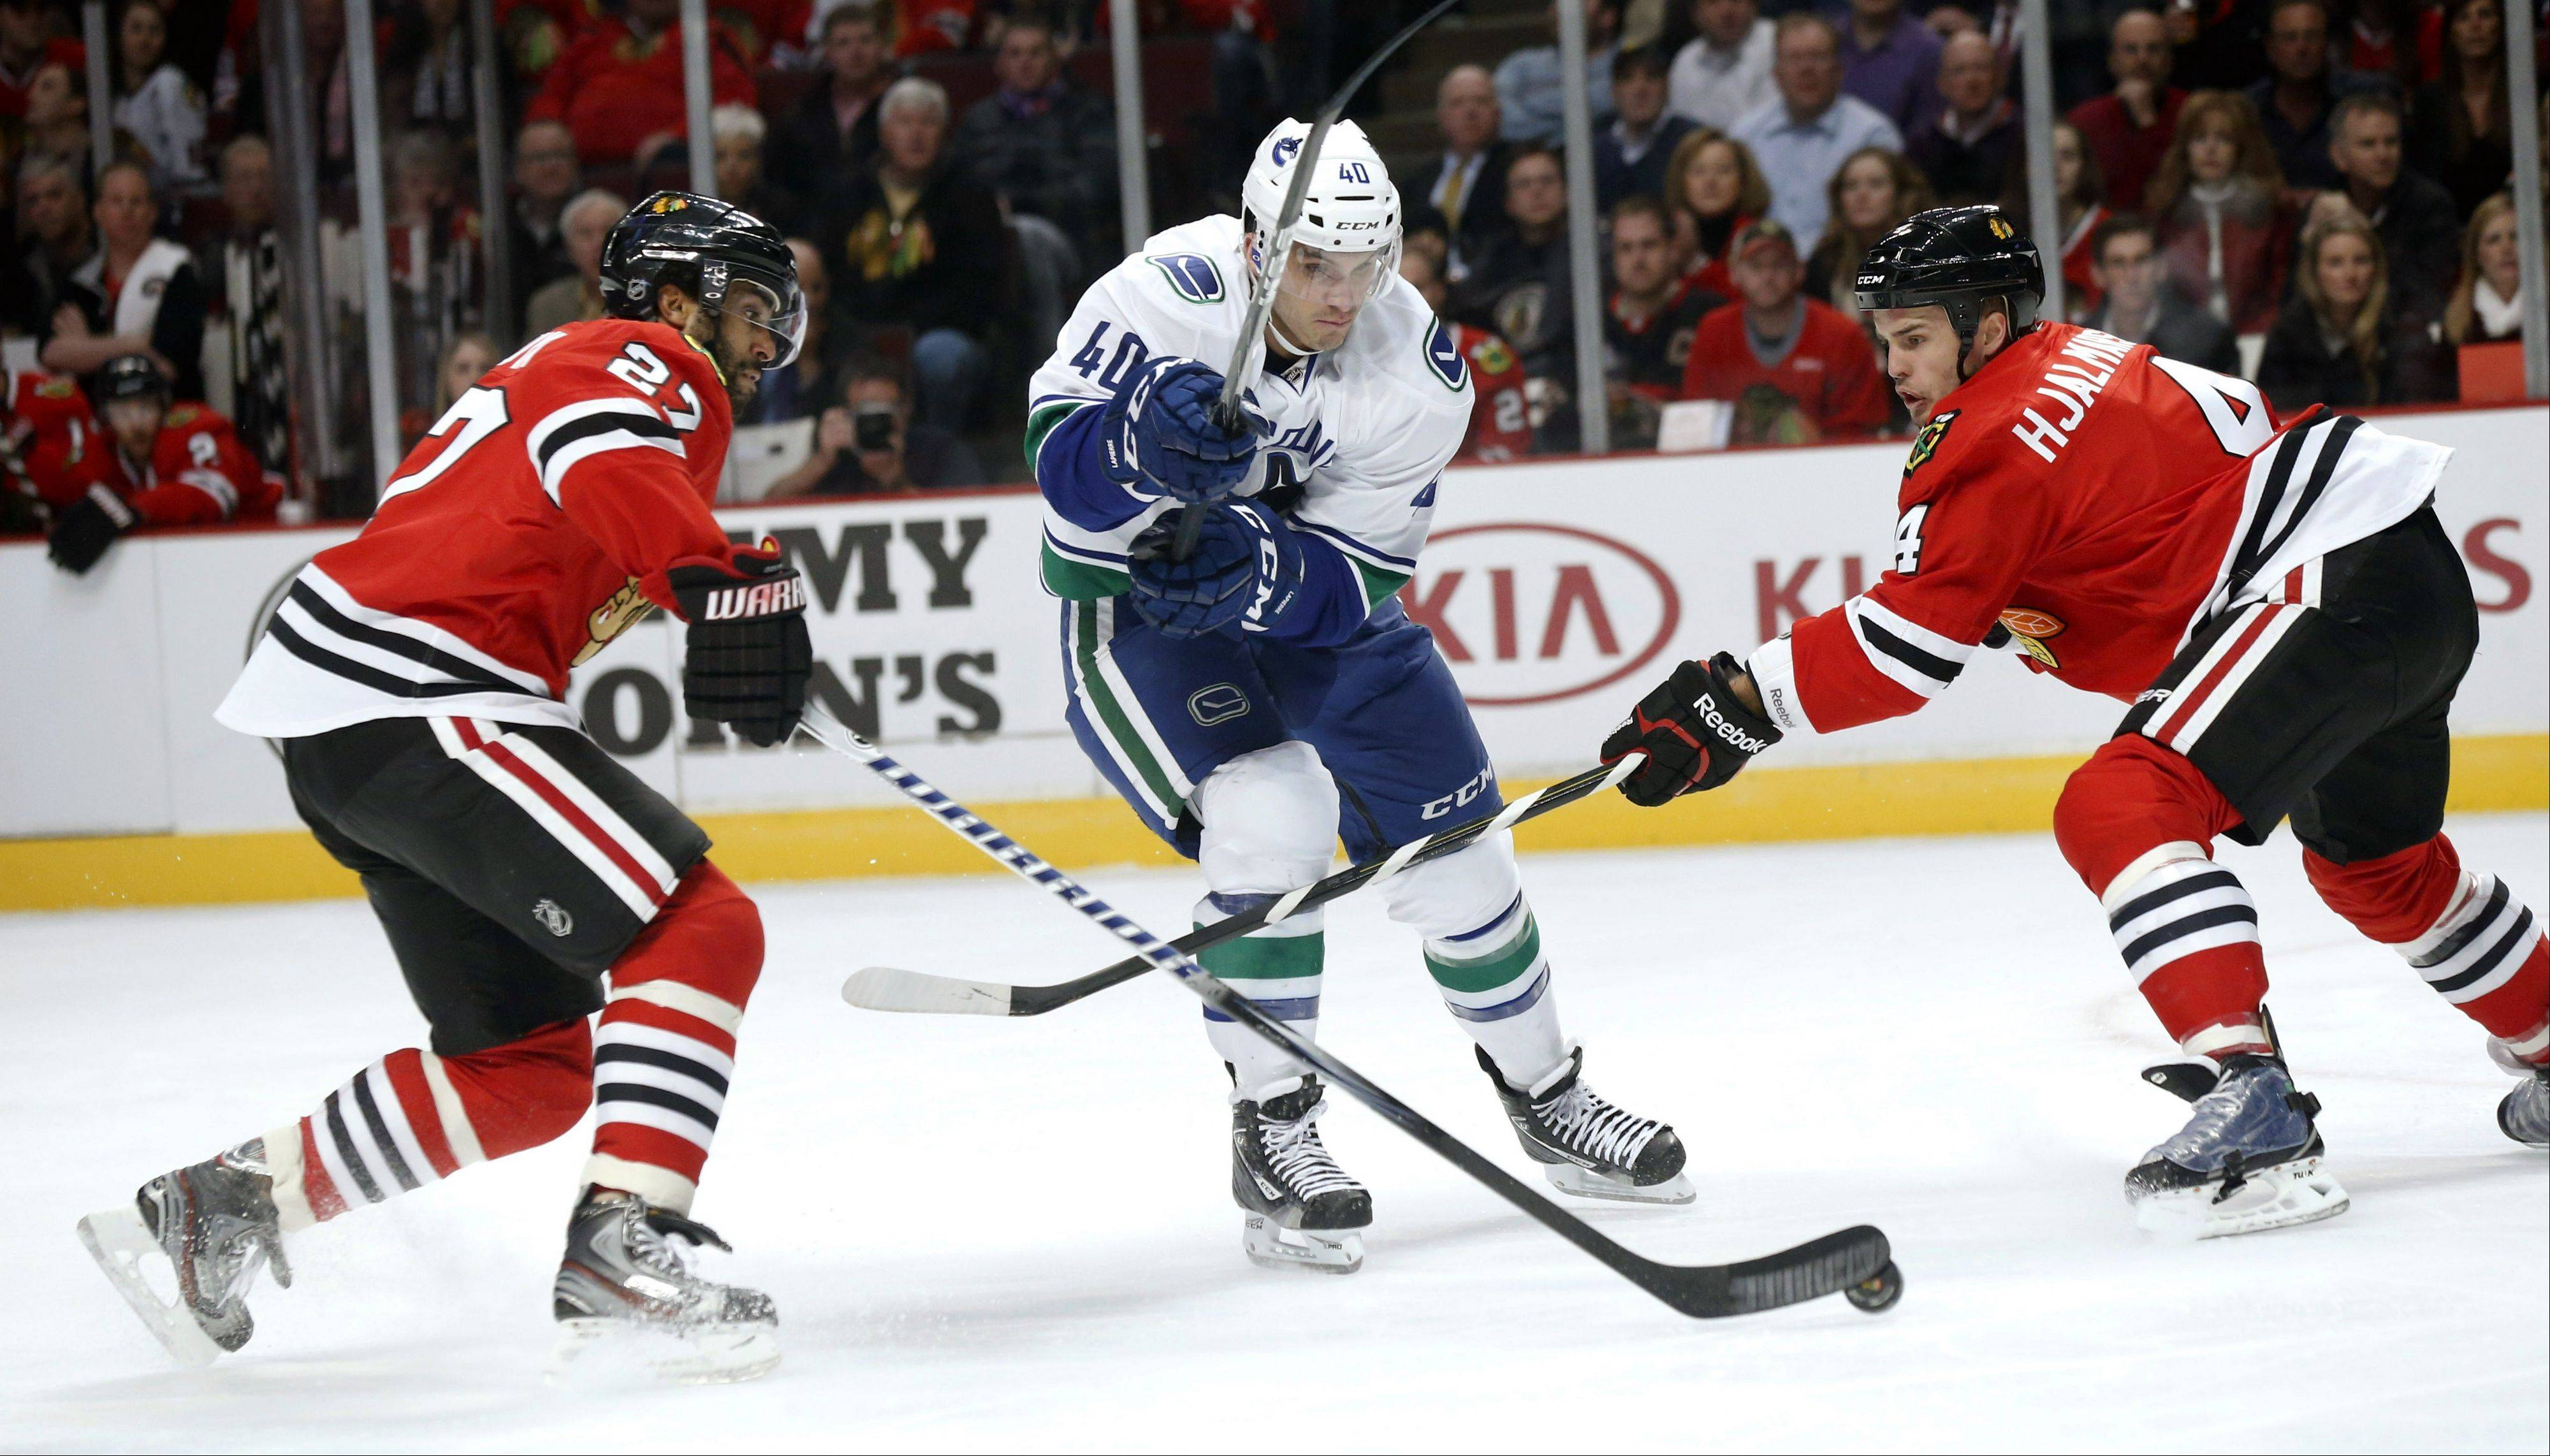 Vancouver Canucks center Maxim Lapierre tries to split the defense of Chicago Blackhawks' Johnny Oduya and Niklas Hjalmarsson during the first period.